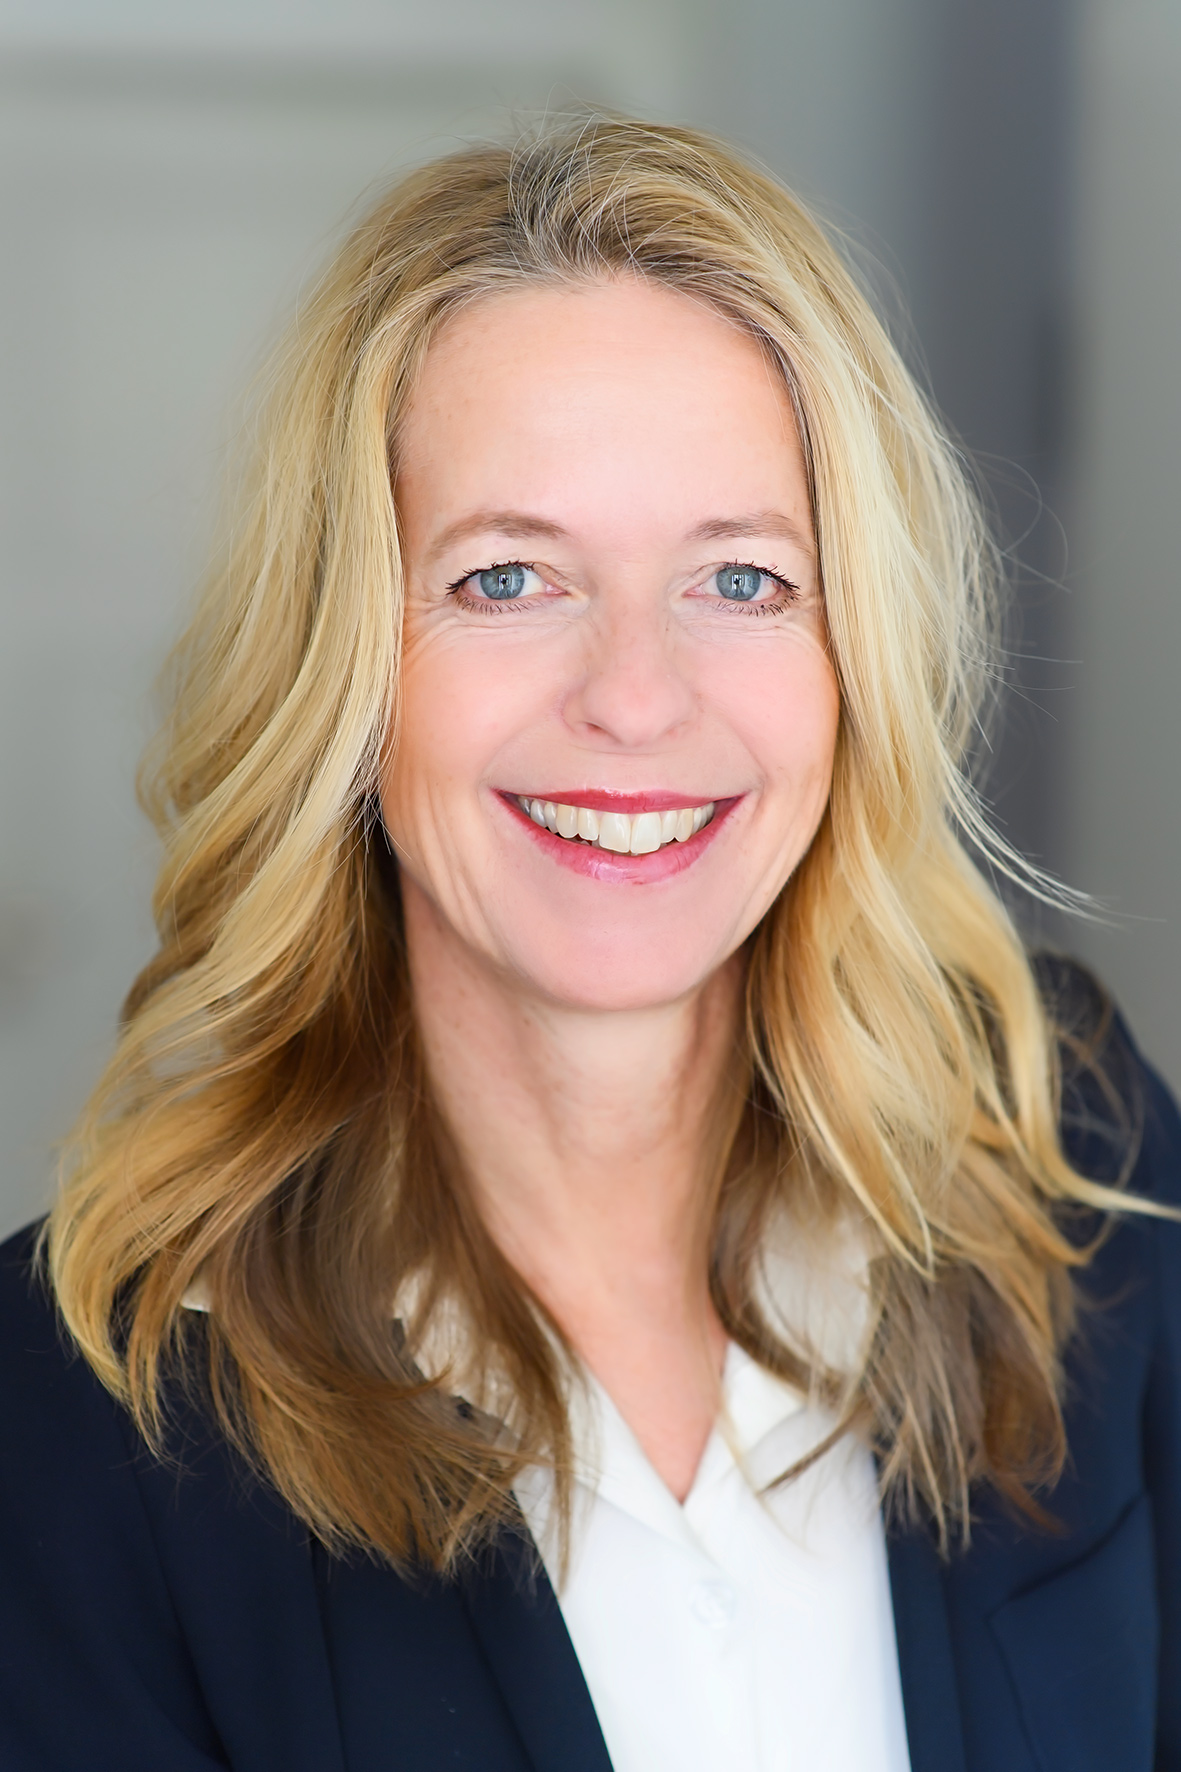 Founder and CEO Susanne Wittig